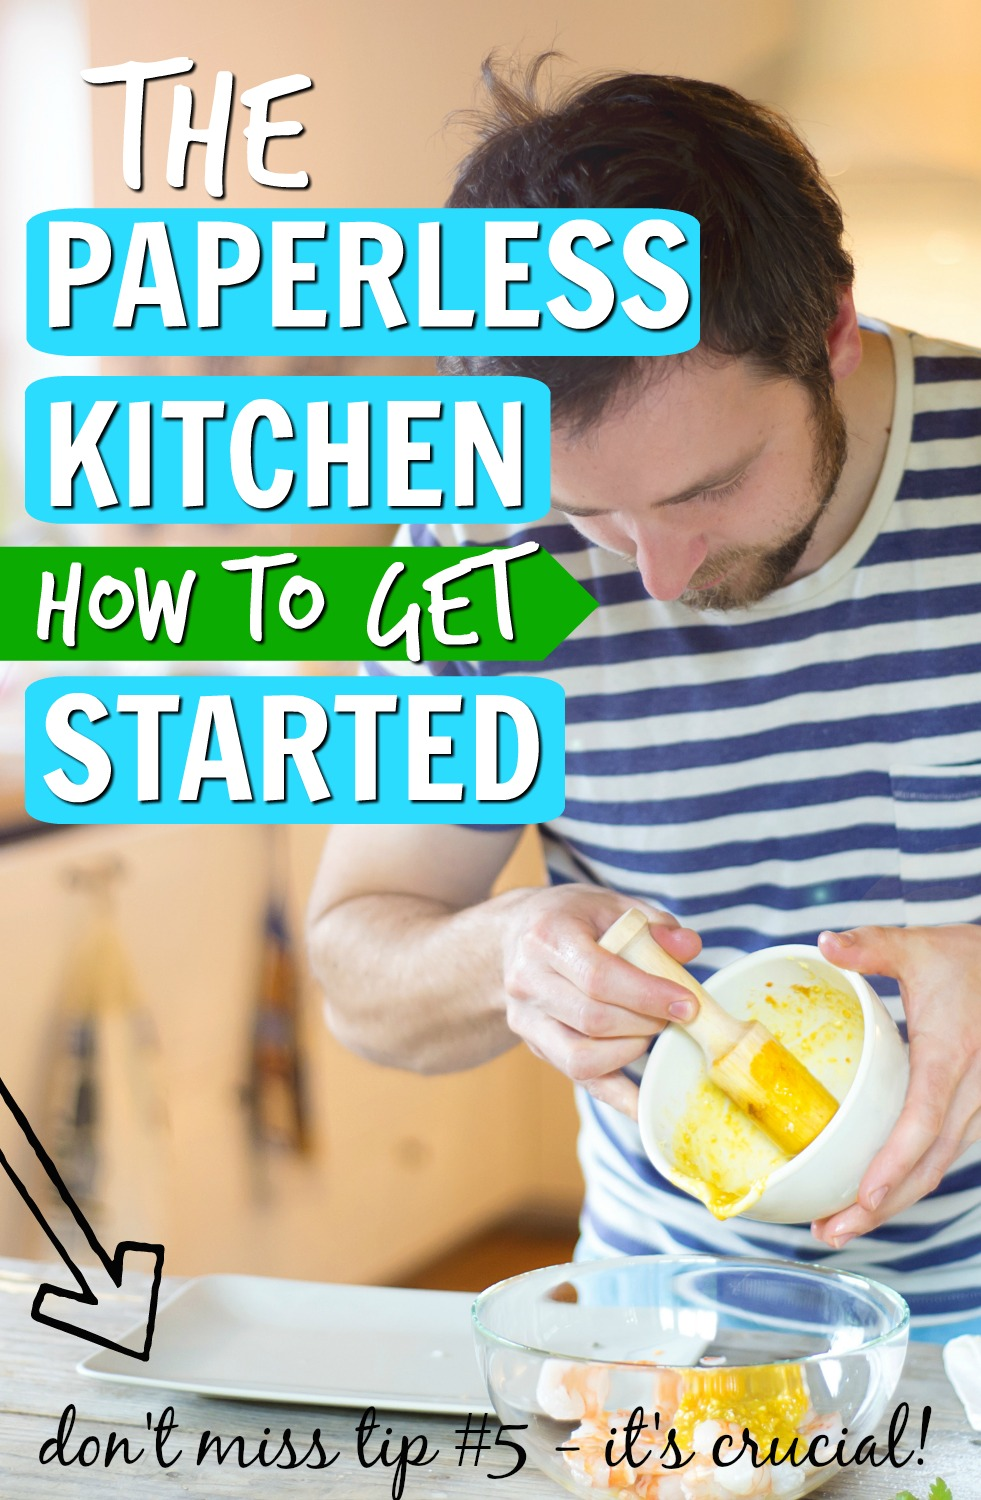 So you WANT to start a paperless kitchen, but you have no idea where to begin or how to break your paper towel habit. If that's you, these 5 tips will help you start your paperless kitchen journey: #5 is CRUCIAL for your success! #paperlesskitchen #zerowaste #minimalist